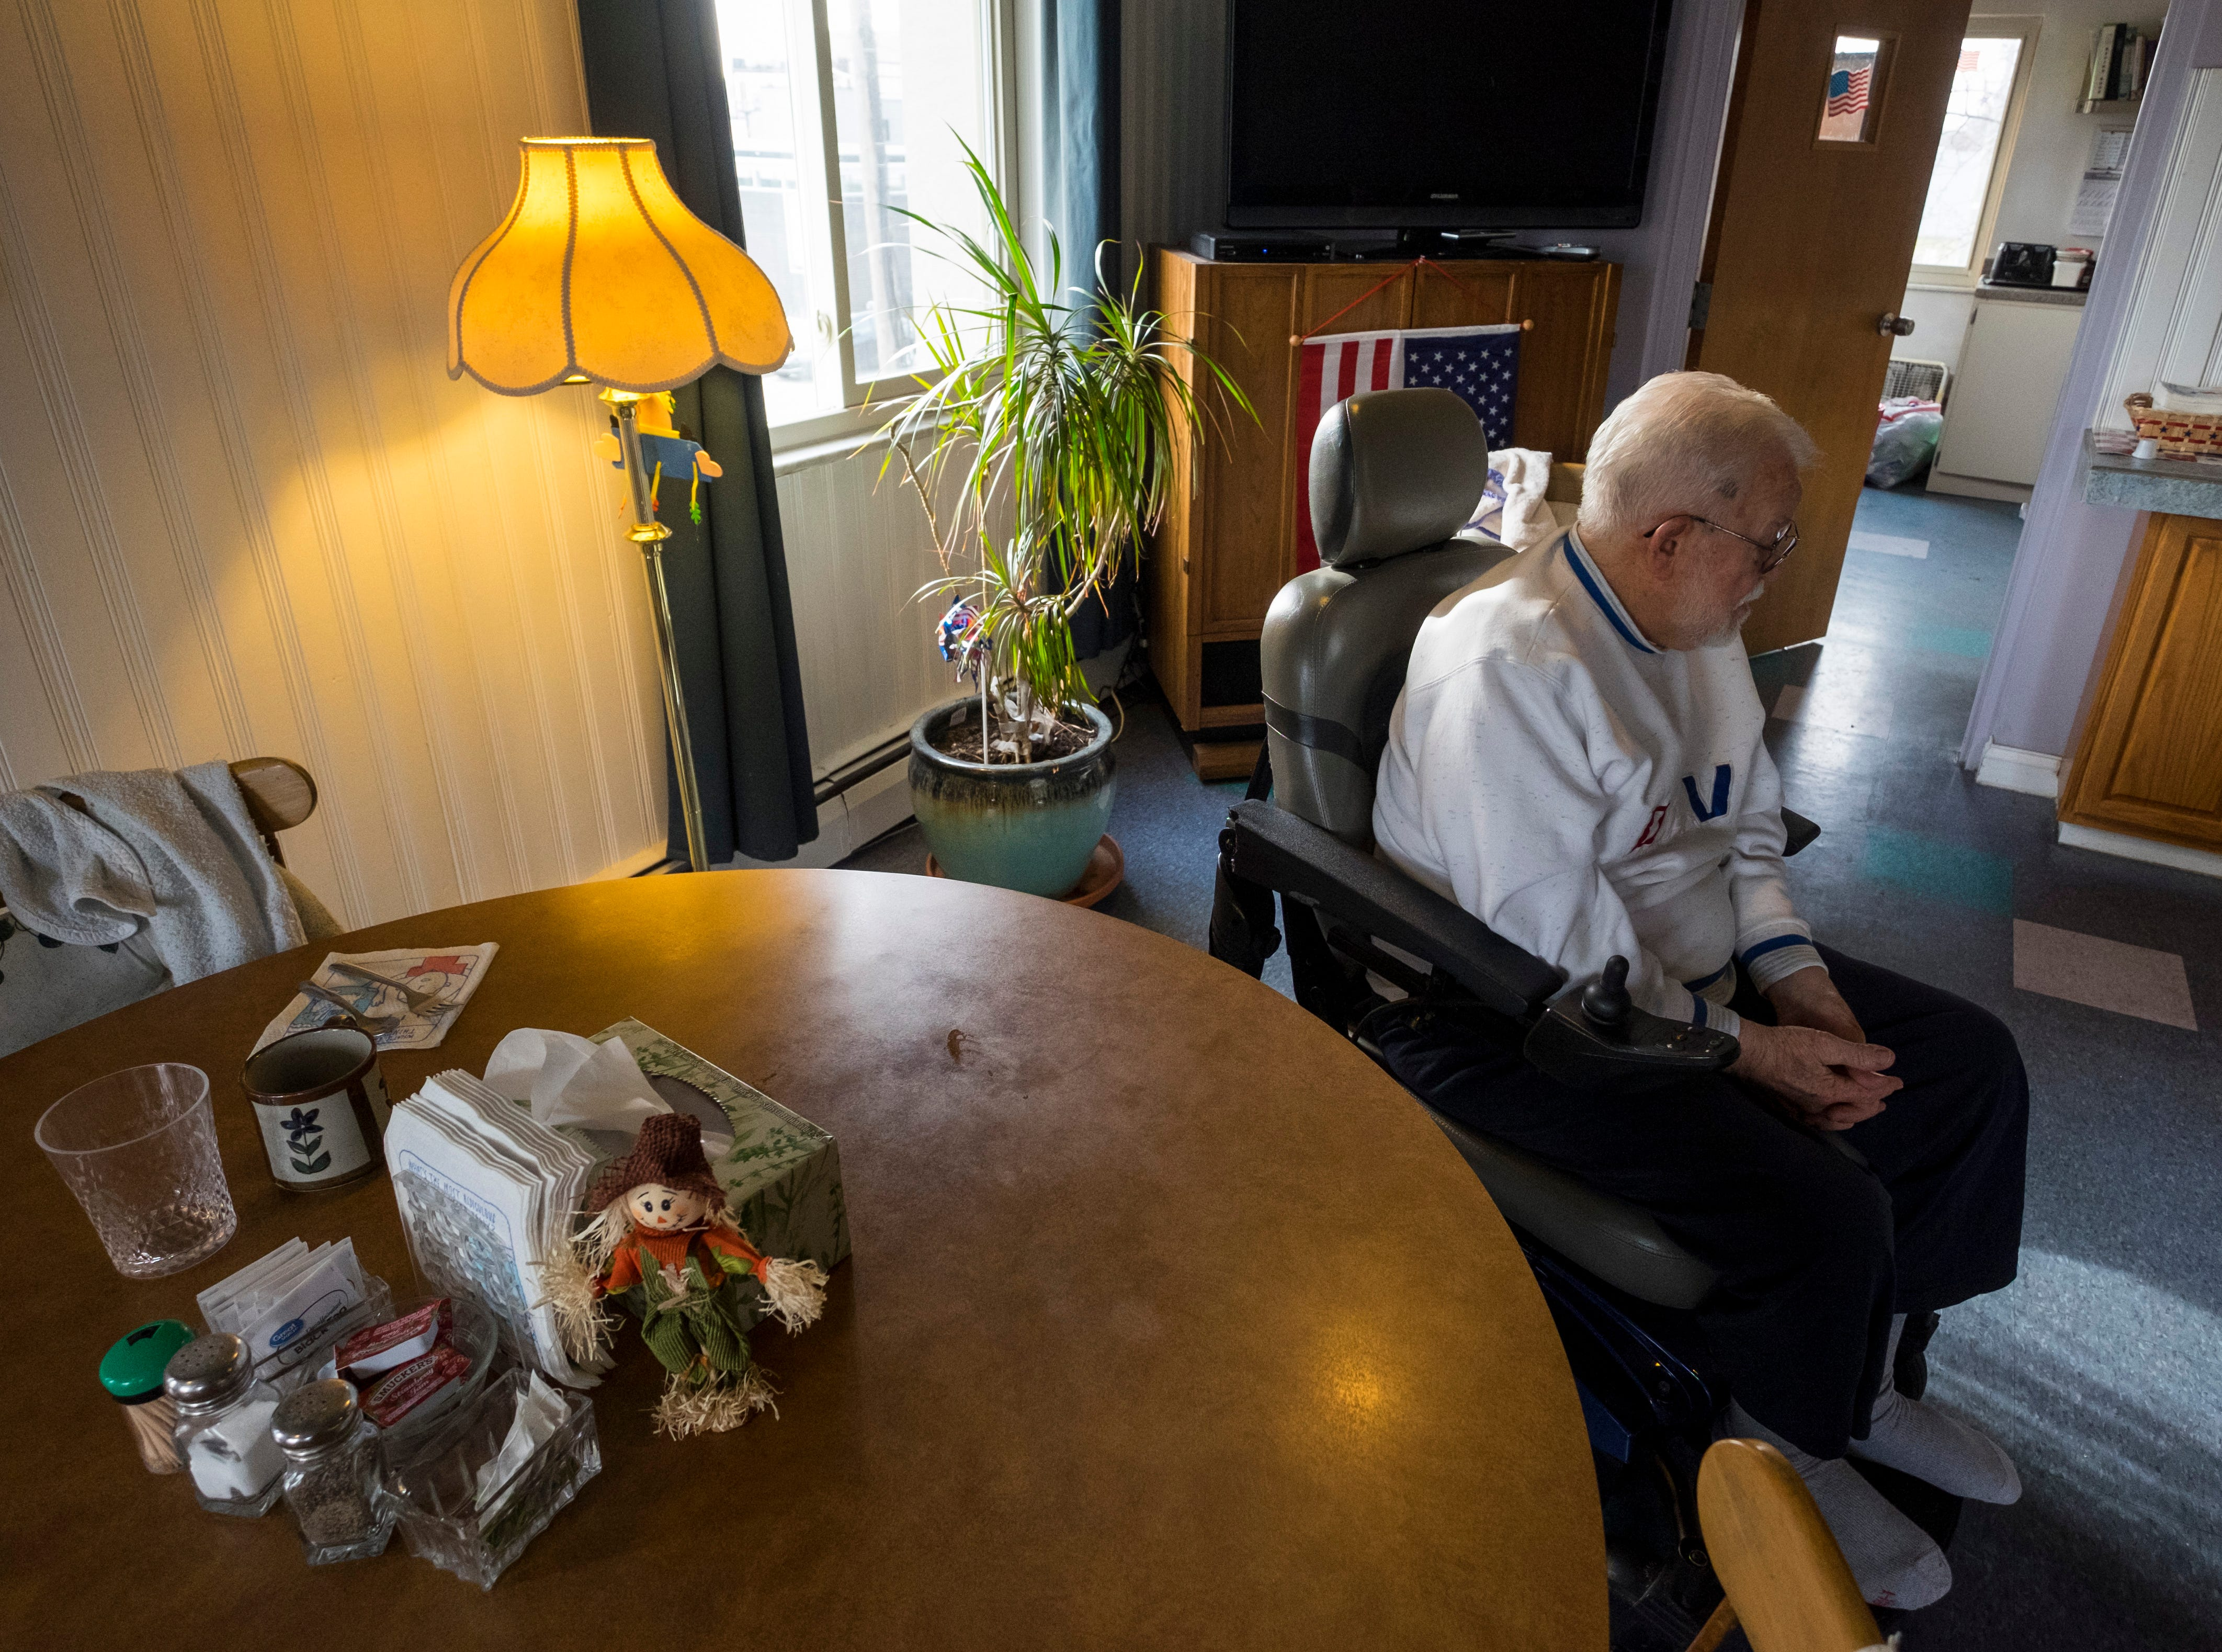 William Turney sits in the dining room of Manor Adult Foster Care  Monday, Nov. 19, 2018 before a recognition ceremony. Turney, a 92-year-old World War II veteran, wanted to be a police officer after the war but couldn't because of height requirements.